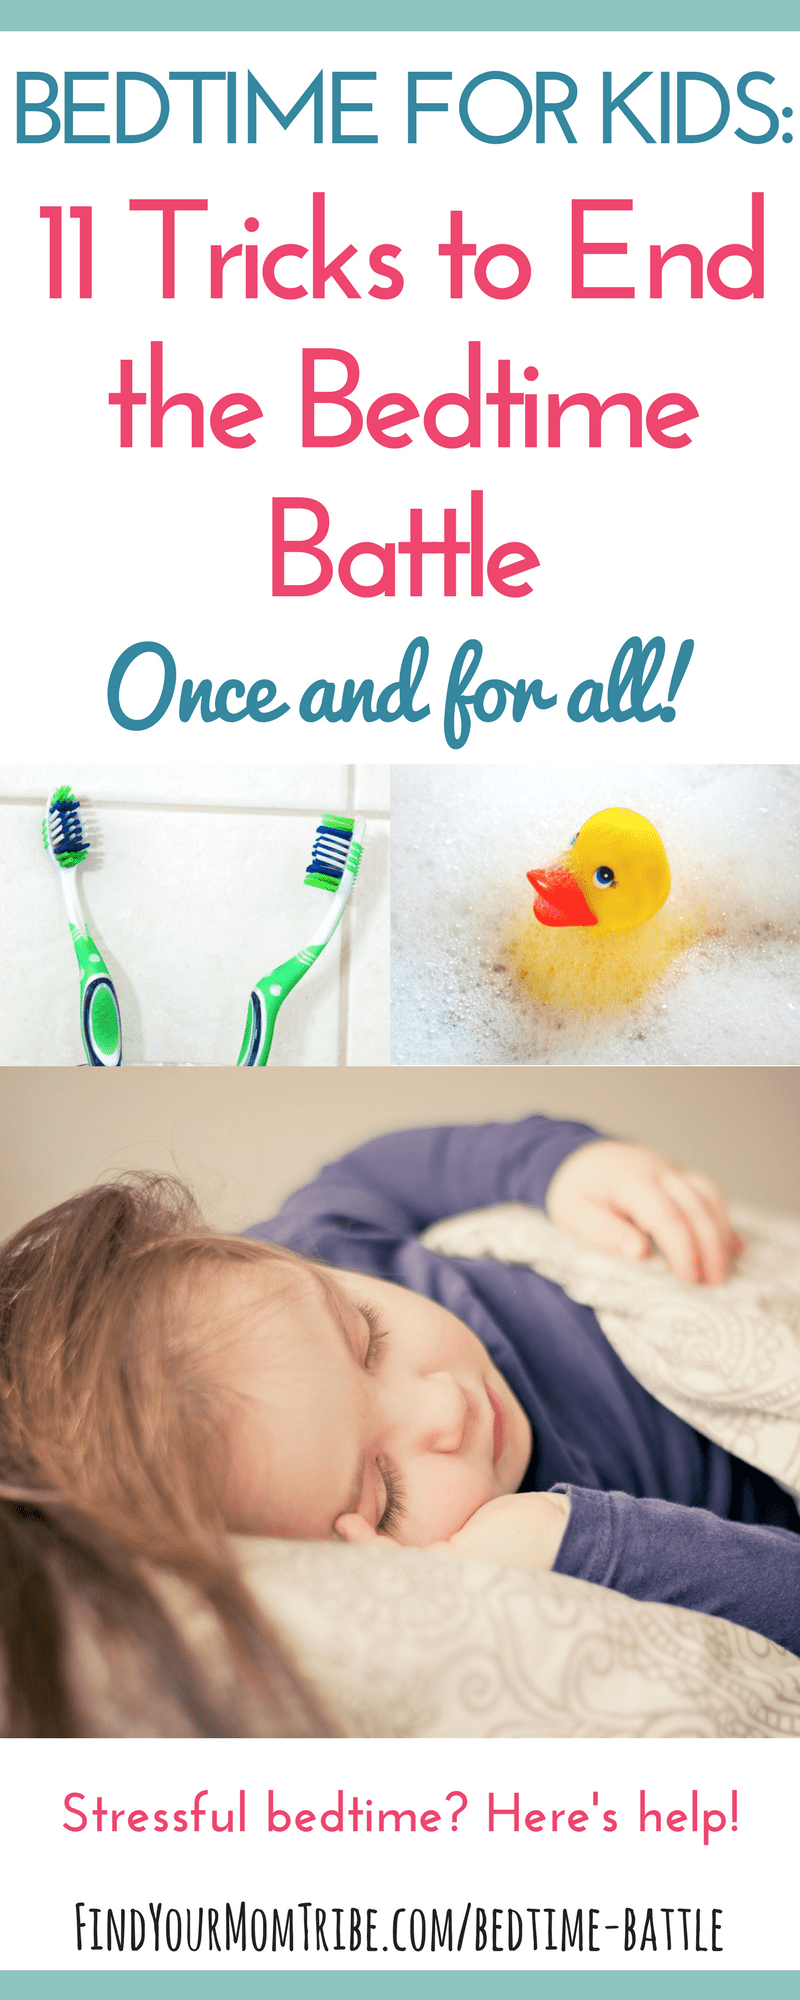 These are the BEST tips for a more peaceful bedtime routine! Bedtime for kids doesn't have to be stressful! Read article at: findyourmomtribe.com/bedtime-battle | Bedtime battles | Bedtime routine kids | Bedtime for kids | Kids sleep | Sleep tips for kids | kids sleep